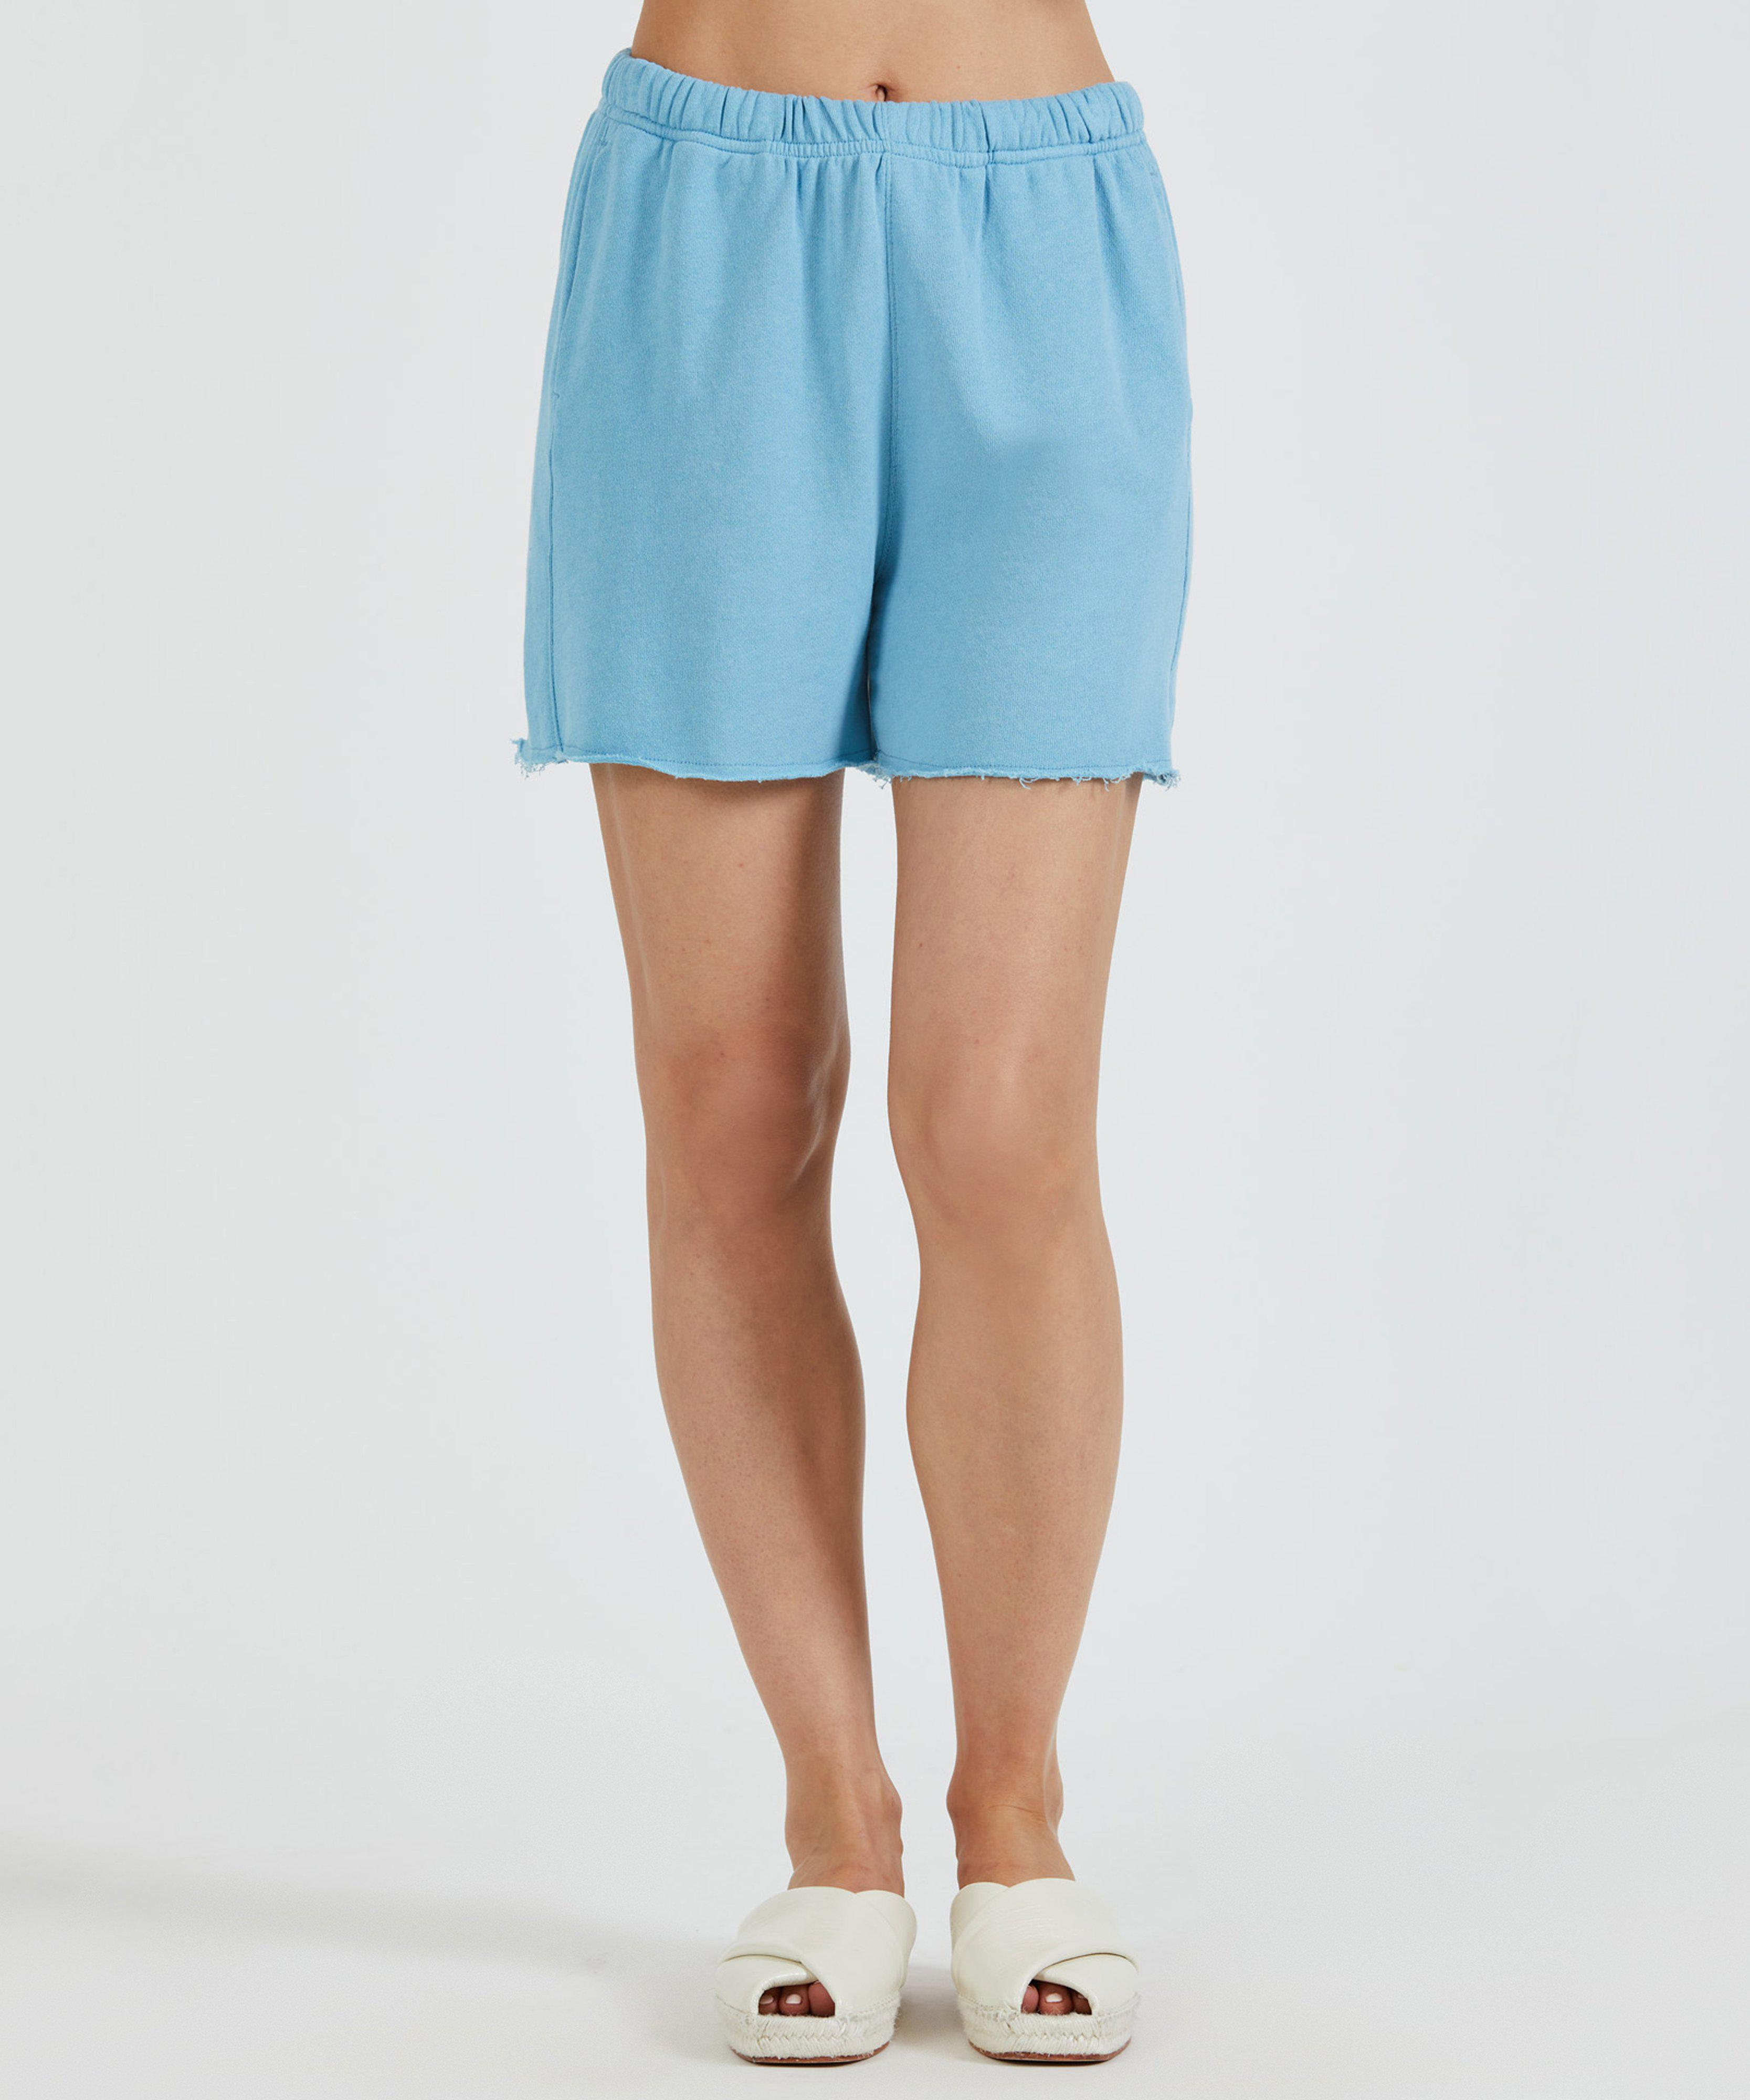 French Terry Pull-On Short - Ocean Blue